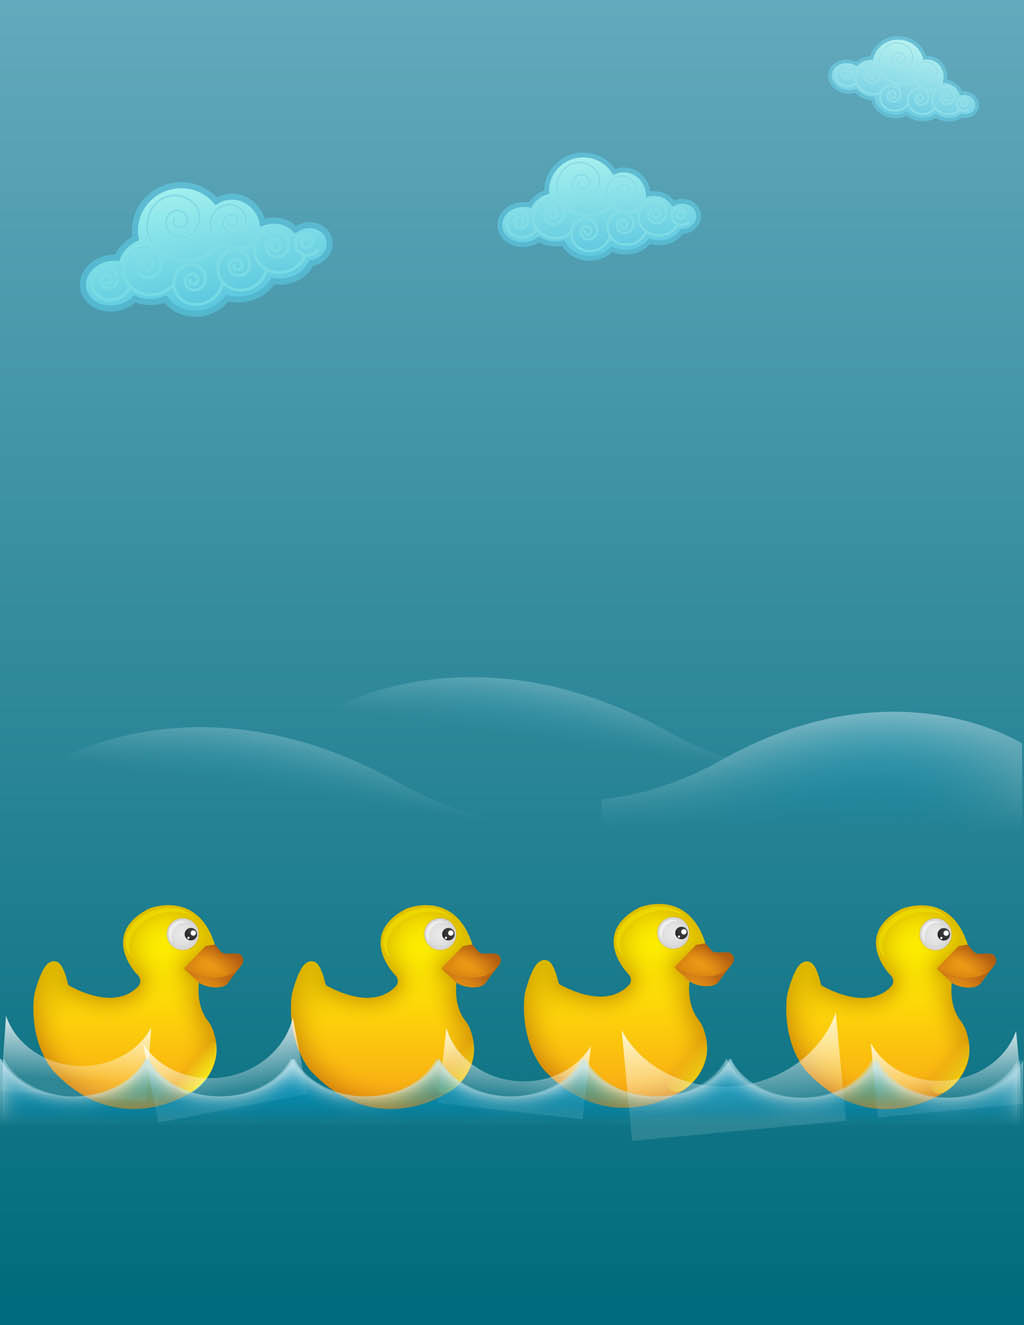 Rubber Ducks Illustration